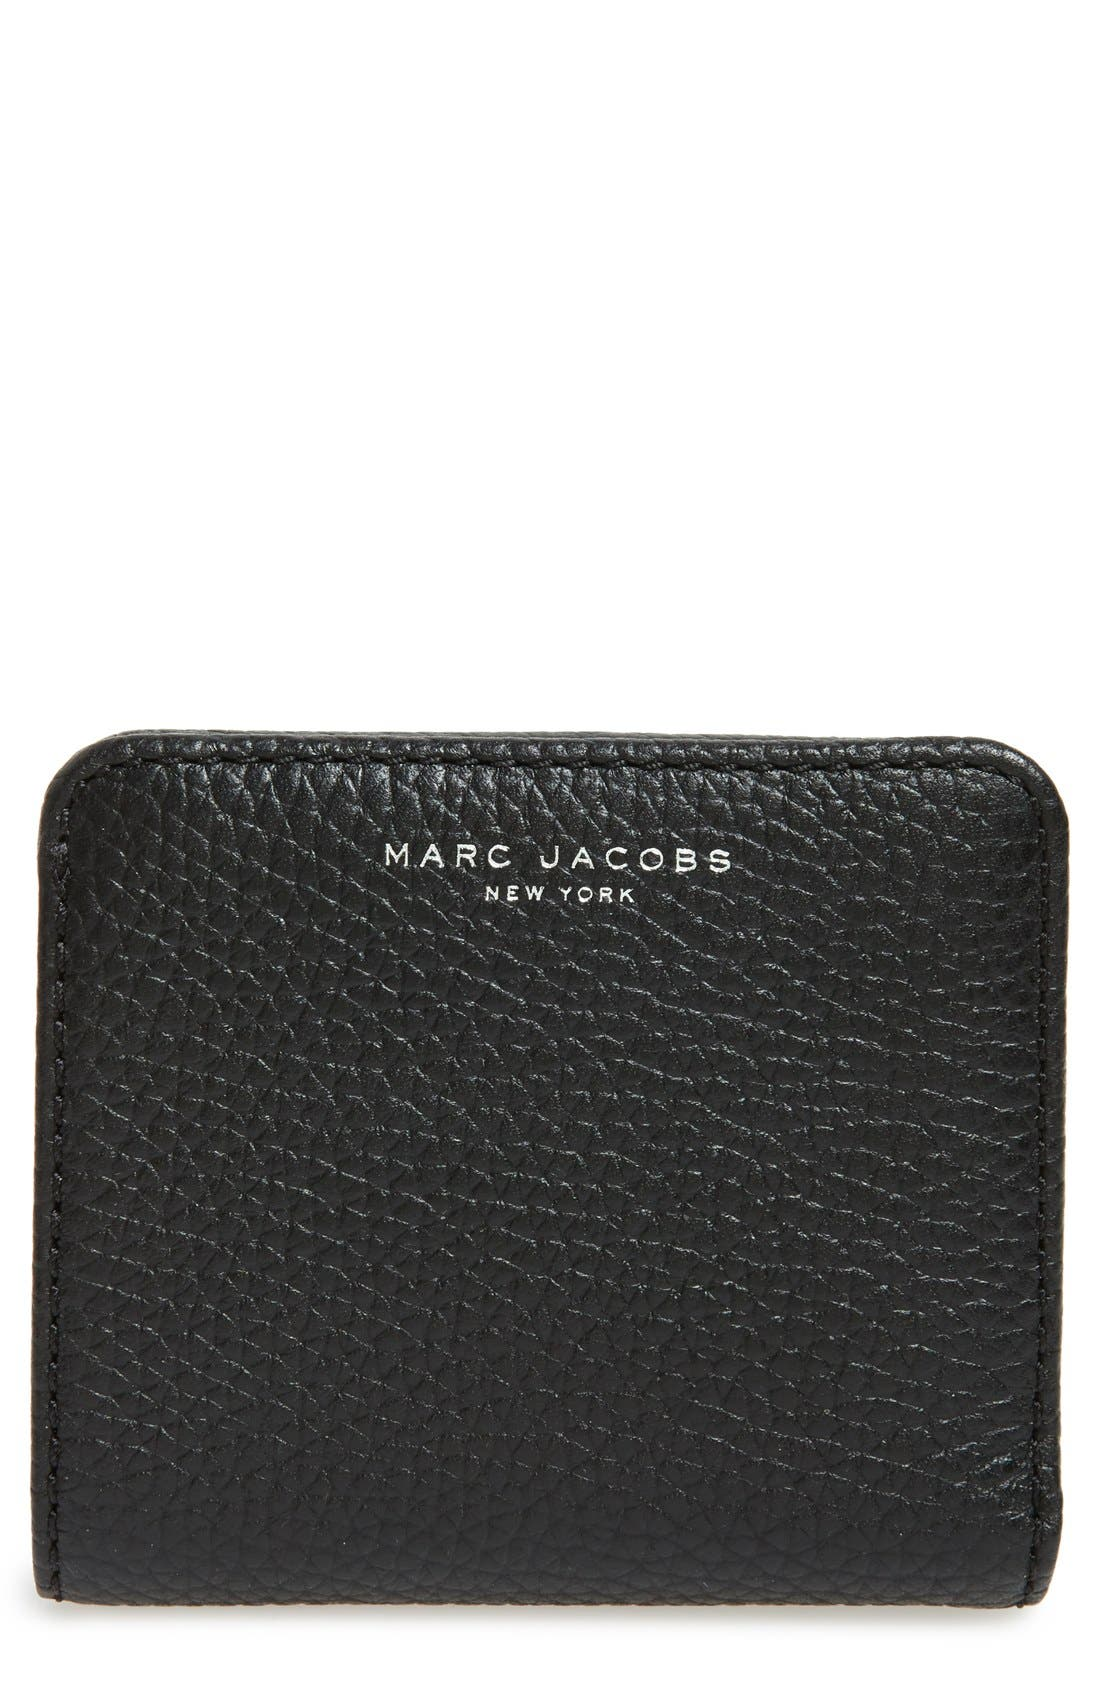 Main Image - MARC JACOBS 'Gotham' Pebbled Leather Wallet